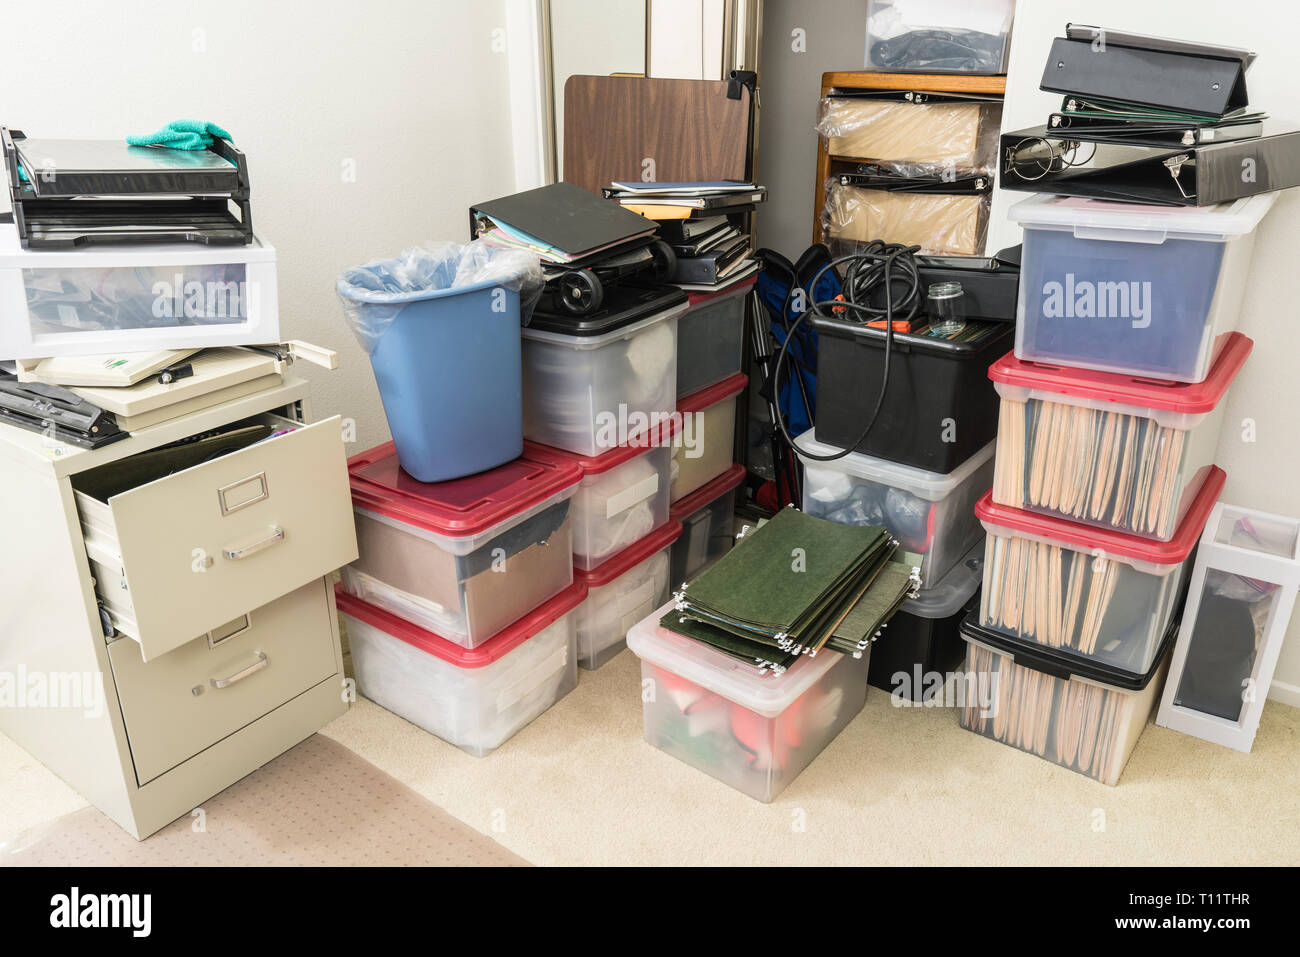 Cluttered corner with storage boxes, binders and miscellaneous office supplies. - Stock Image